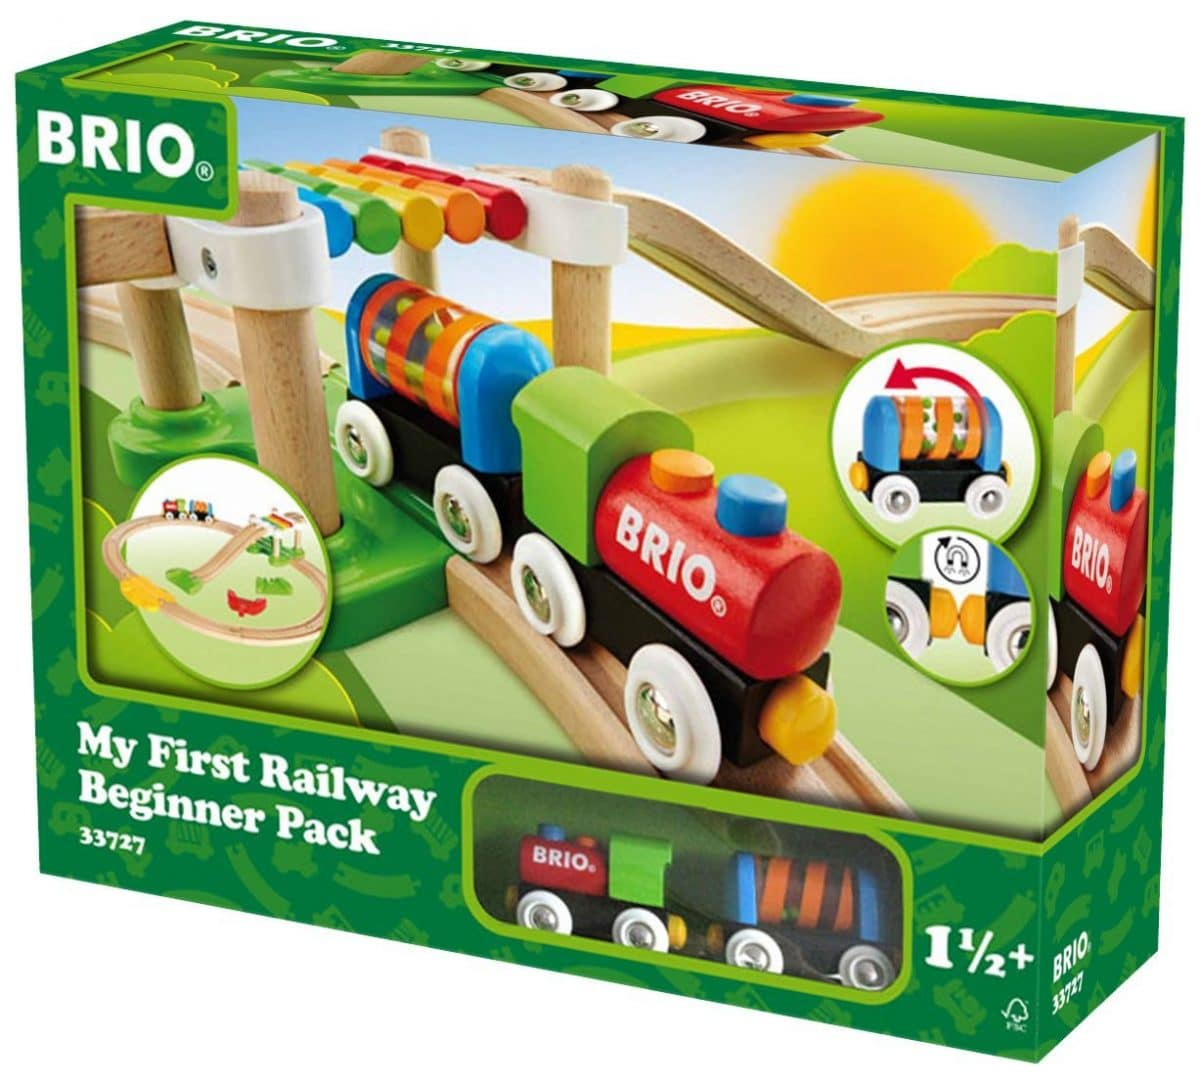 Train Sets For 2 Year Olds: Best Toys And Gift Ideas For 2-Year-Old Girls 2020